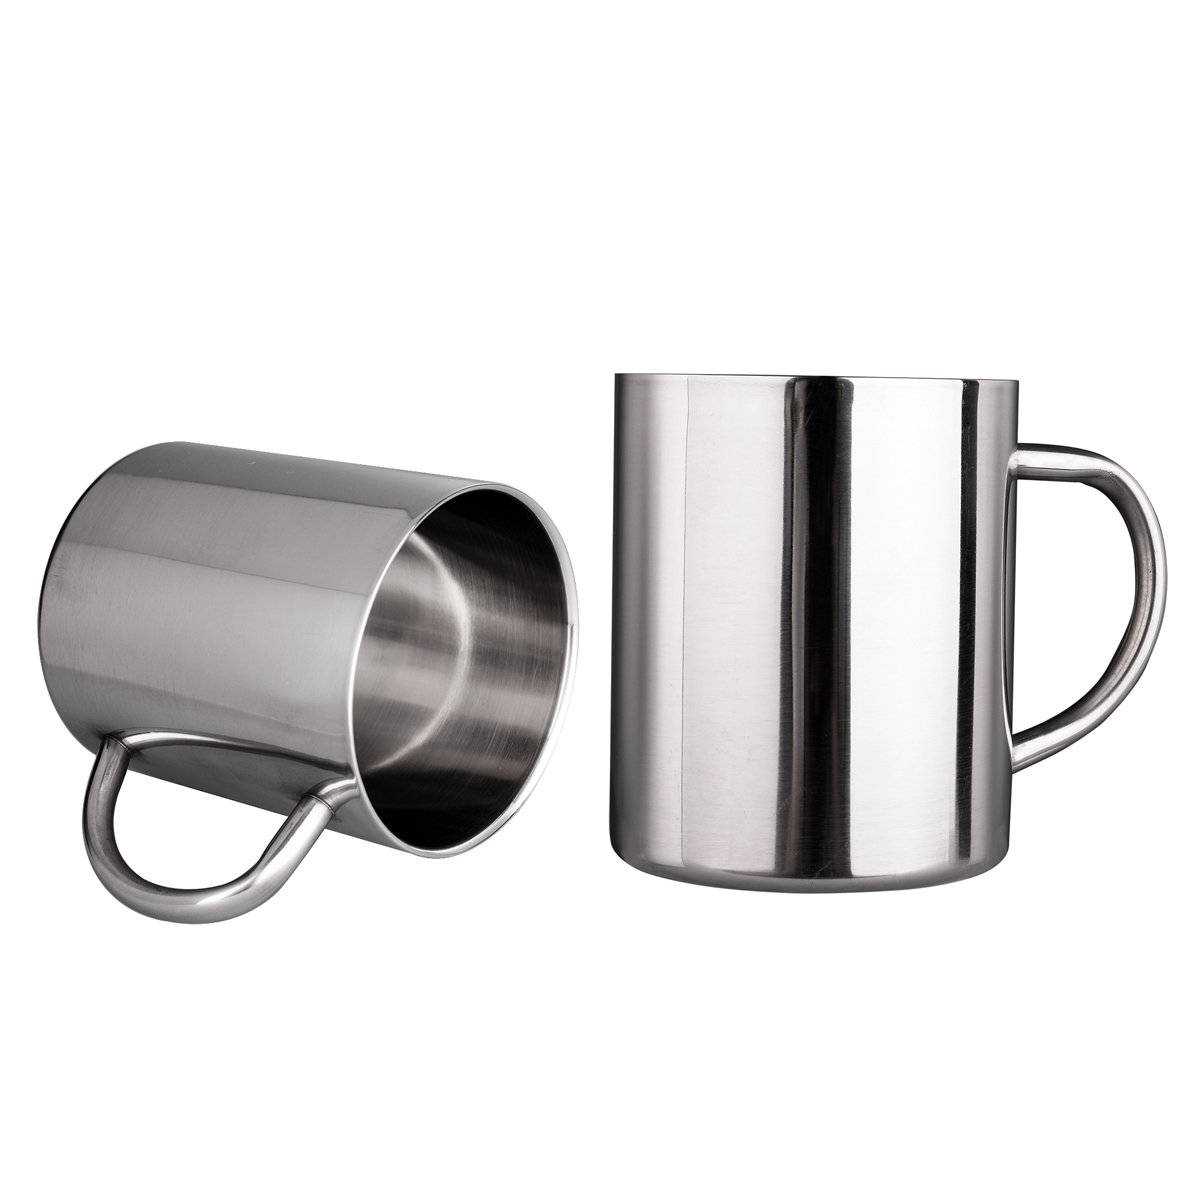 IMEEA® 7.8 Oz (220ml) Brushed Stainless Steel Double Wall Mugs Tea Cups Drinking Cups for Kids, Set of 2 H&PC-63279